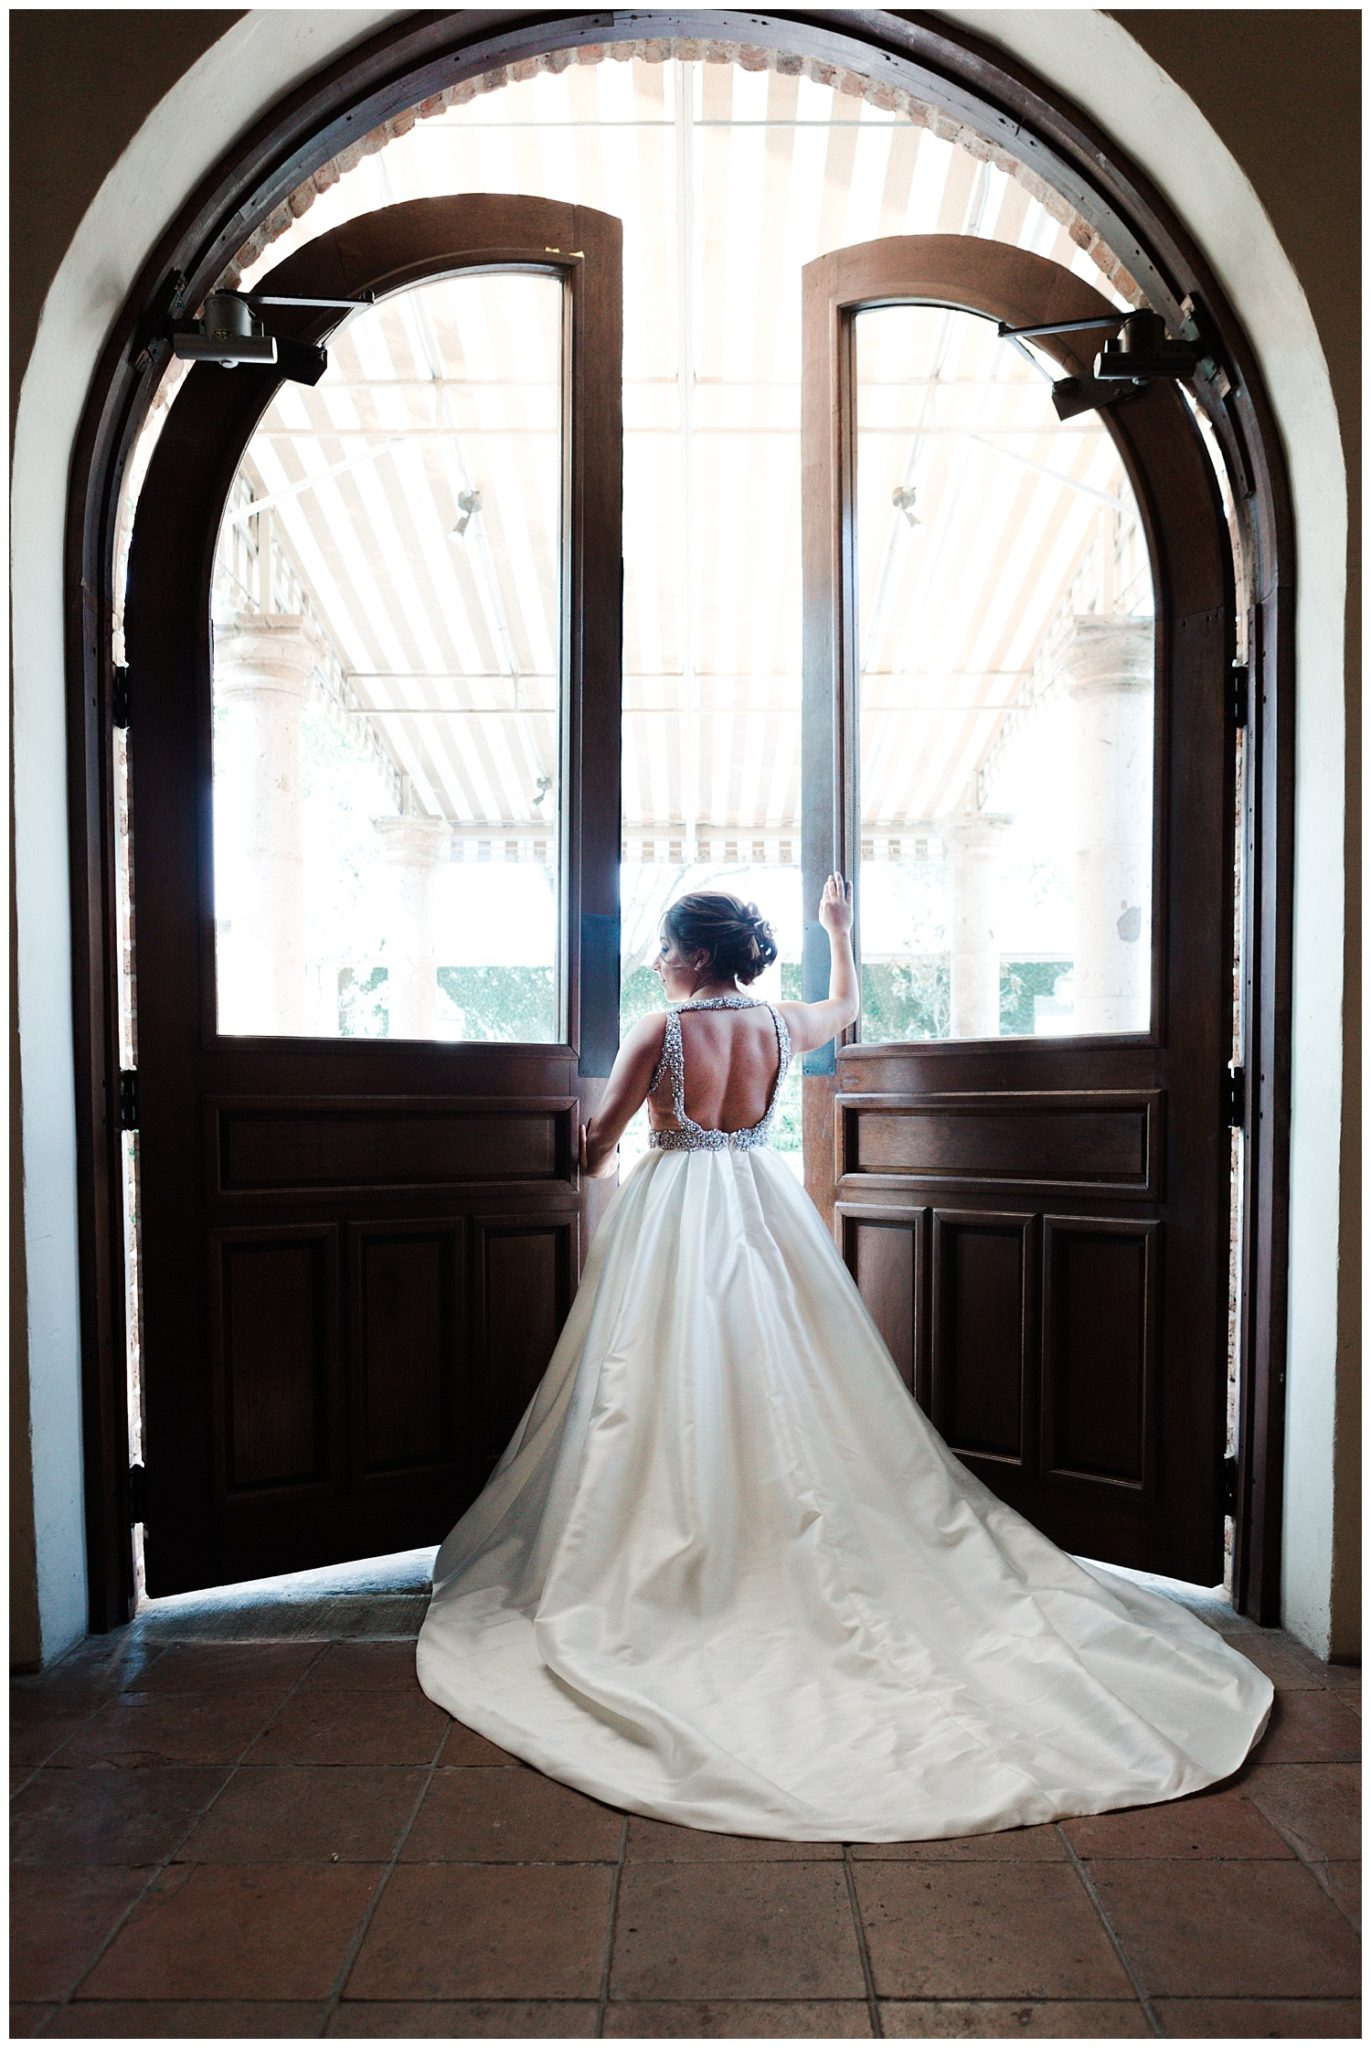 Texas Wedding Photographer | Crystal's Bridals at The Bell Tower on 34th